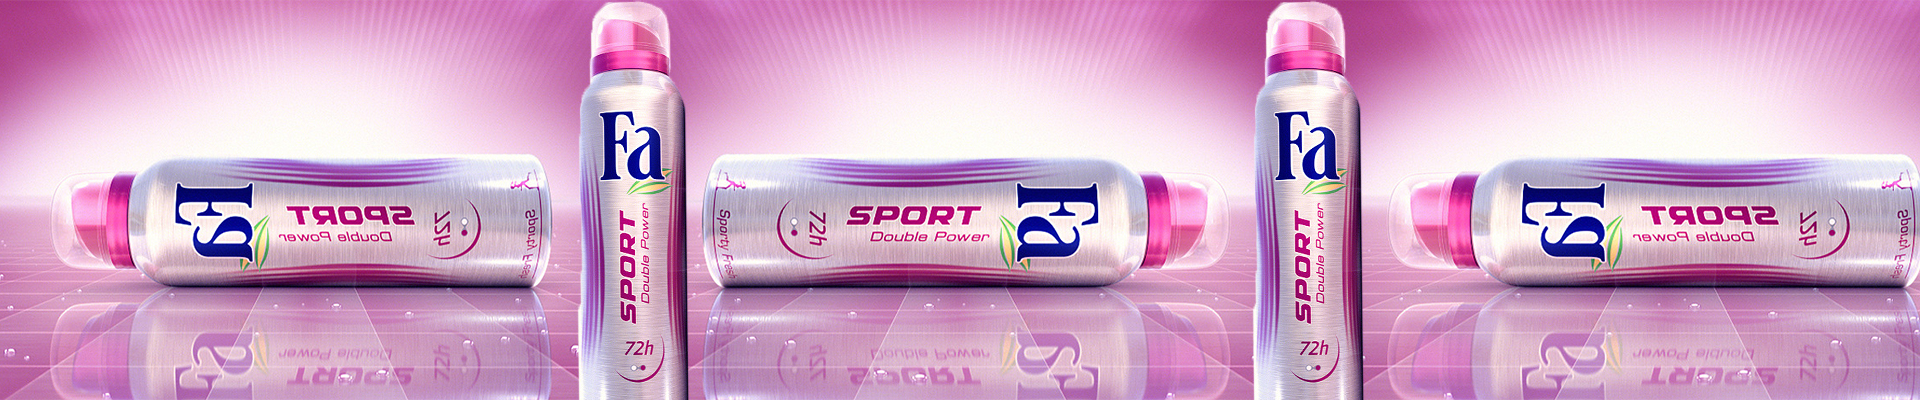 With every order over 99$, FA Sport Deo for free!